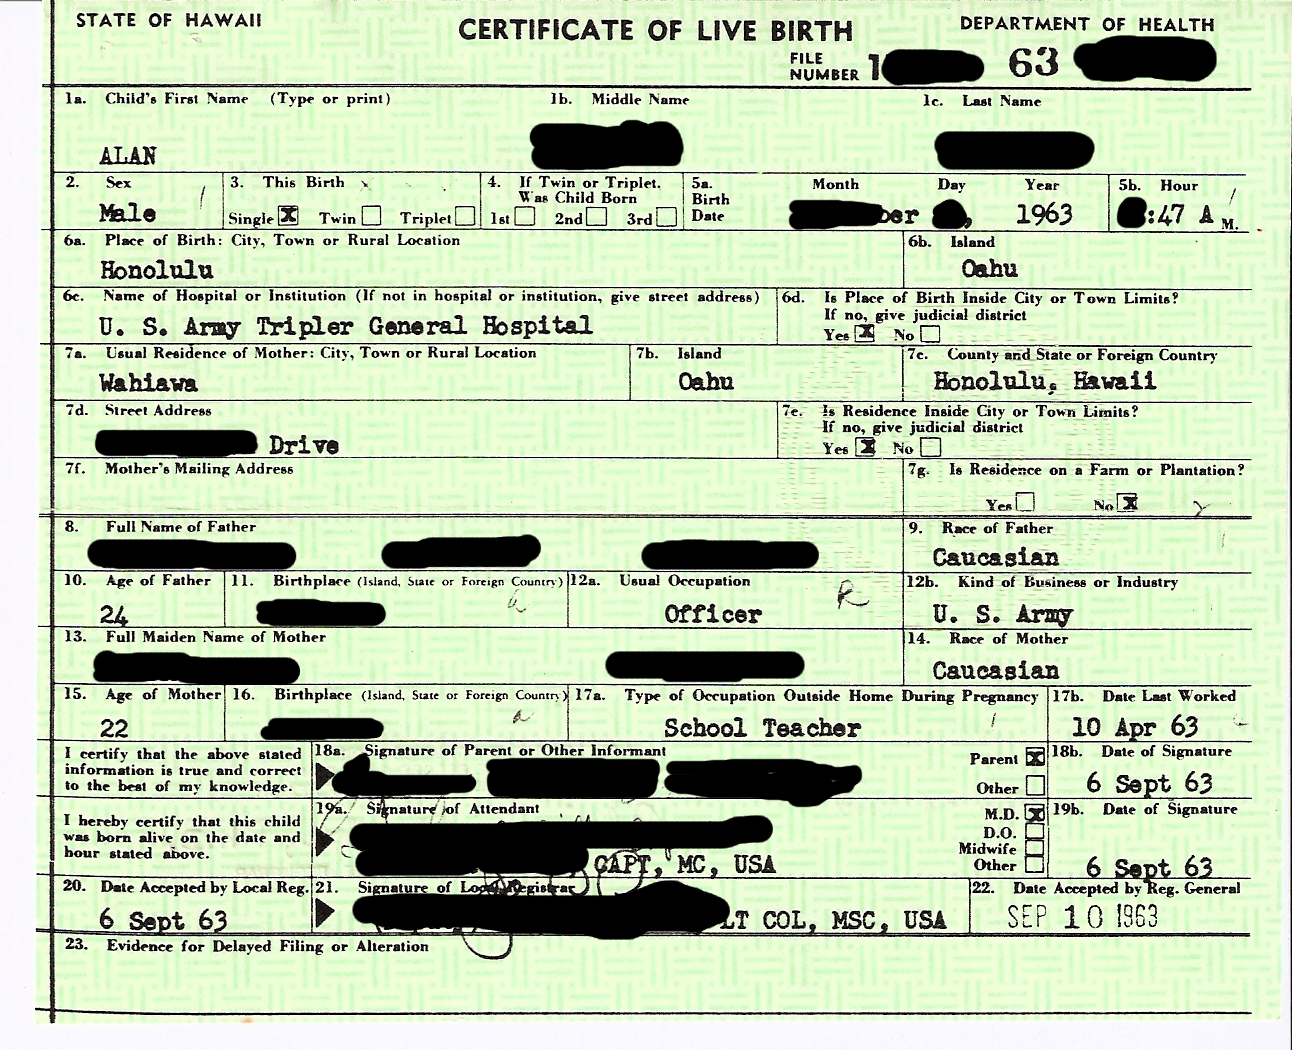 Hawaii birth certificate 1963 snarkybytes hawaii birth certificate 1963 aiddatafo Choice Image